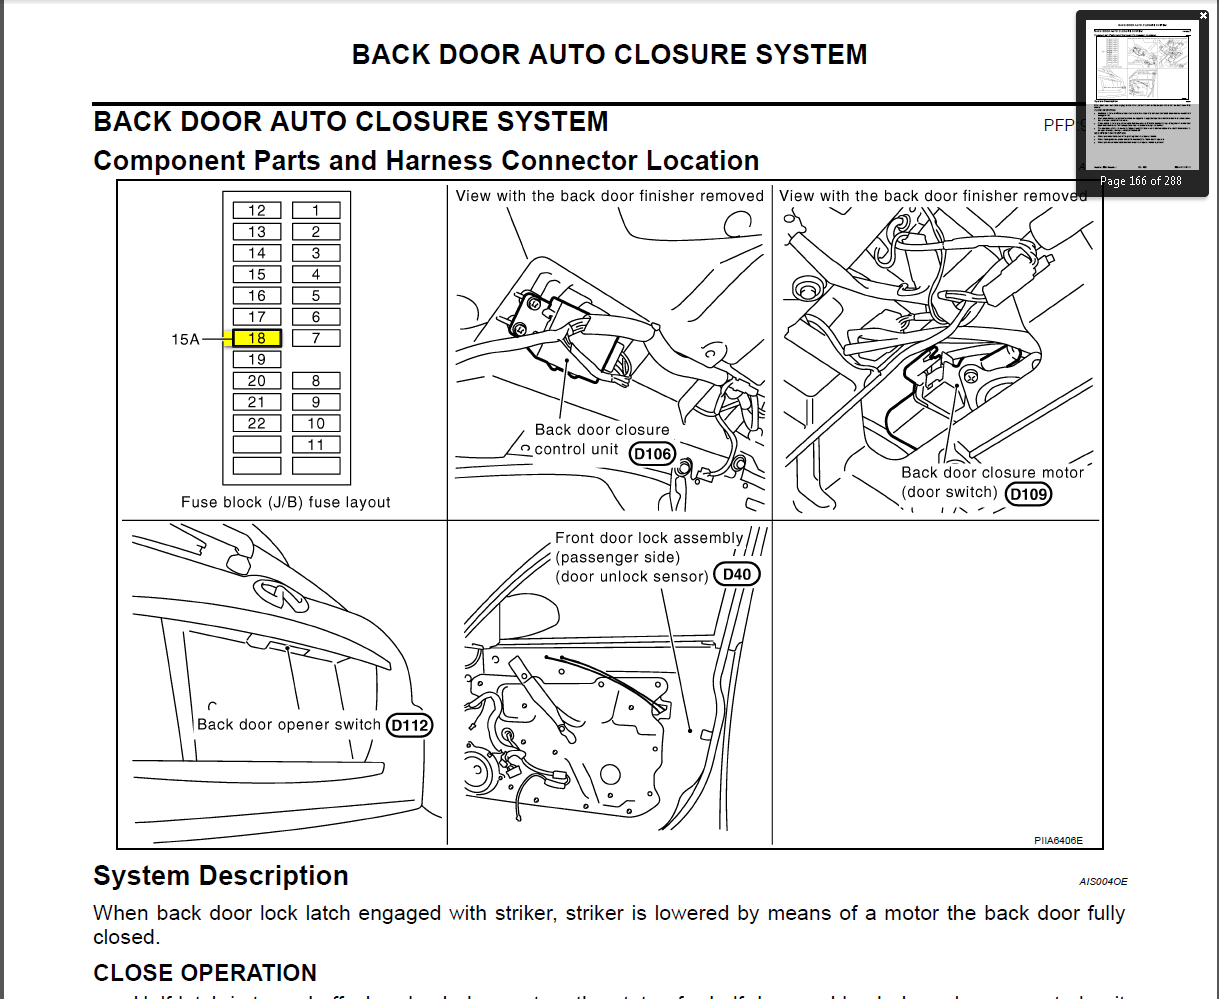 infiniti i30 fuse box location wiring diagram1999 infiniti i30 fuse box wiring diagram